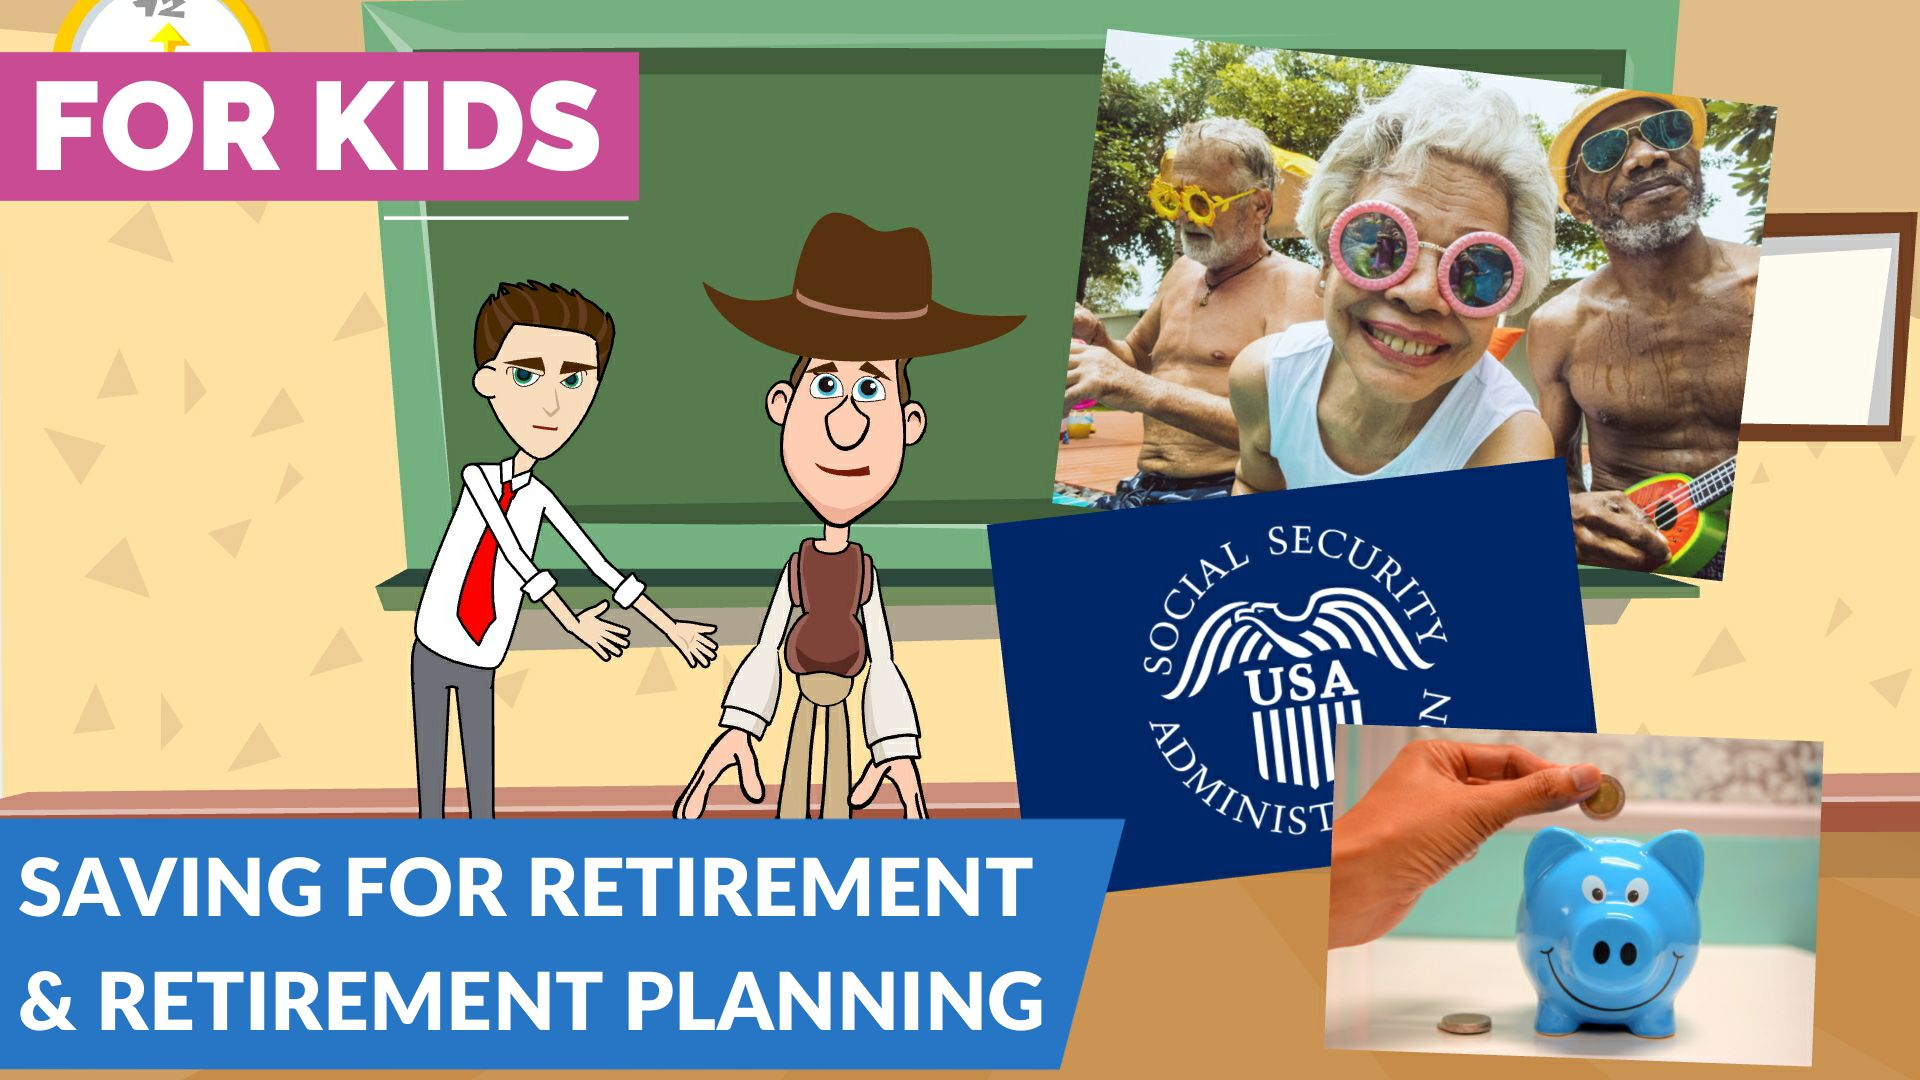 Retirement Planning and Saving for Retirement for Kids, Teens and Beginners | 162 Saving for Retirement New